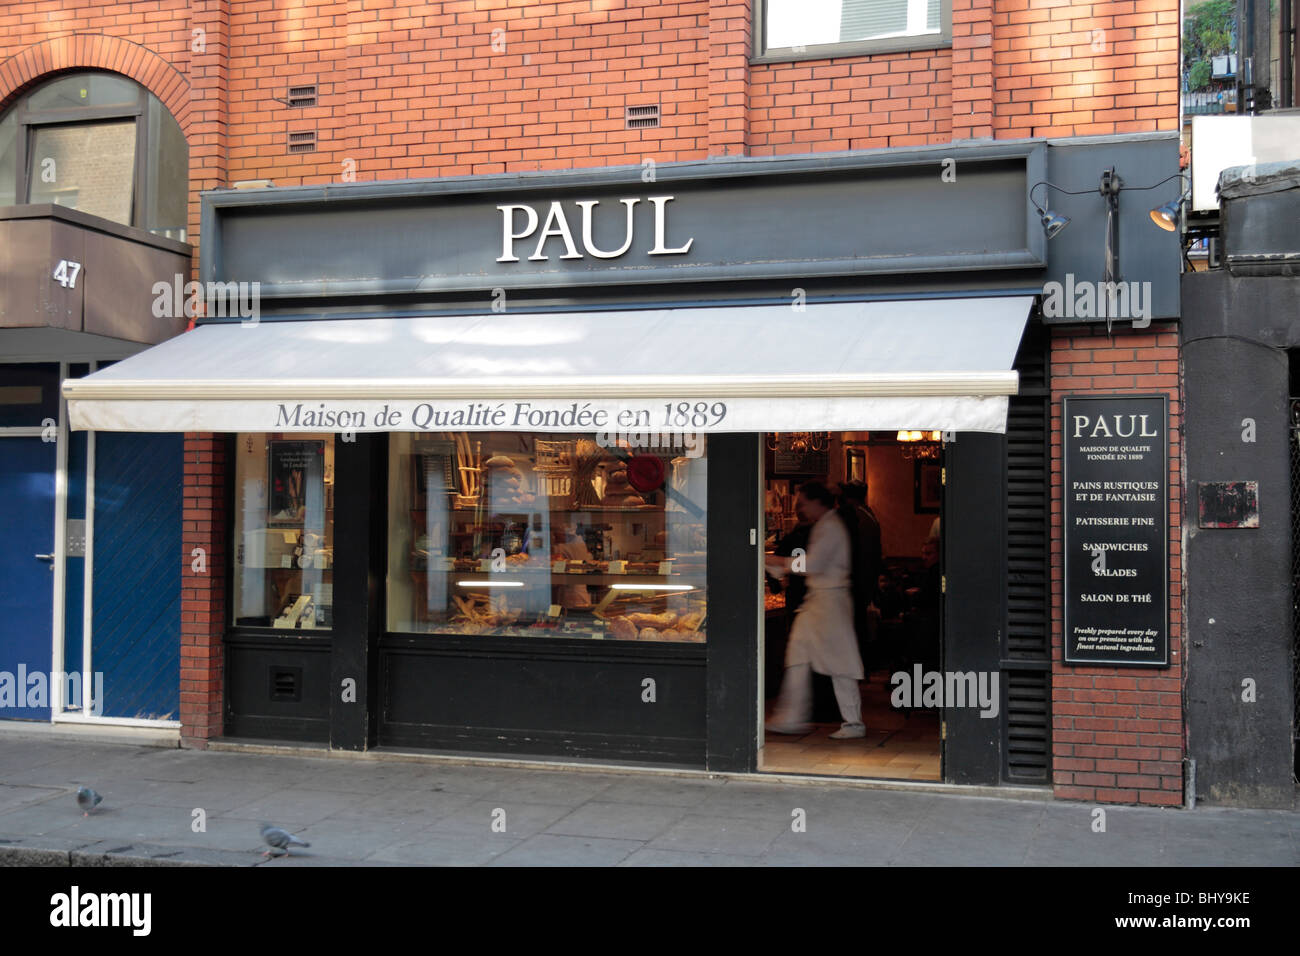 The shop front of the Paul bakery shop, Old Compton Street, London. Nov 2009 - Stock Image